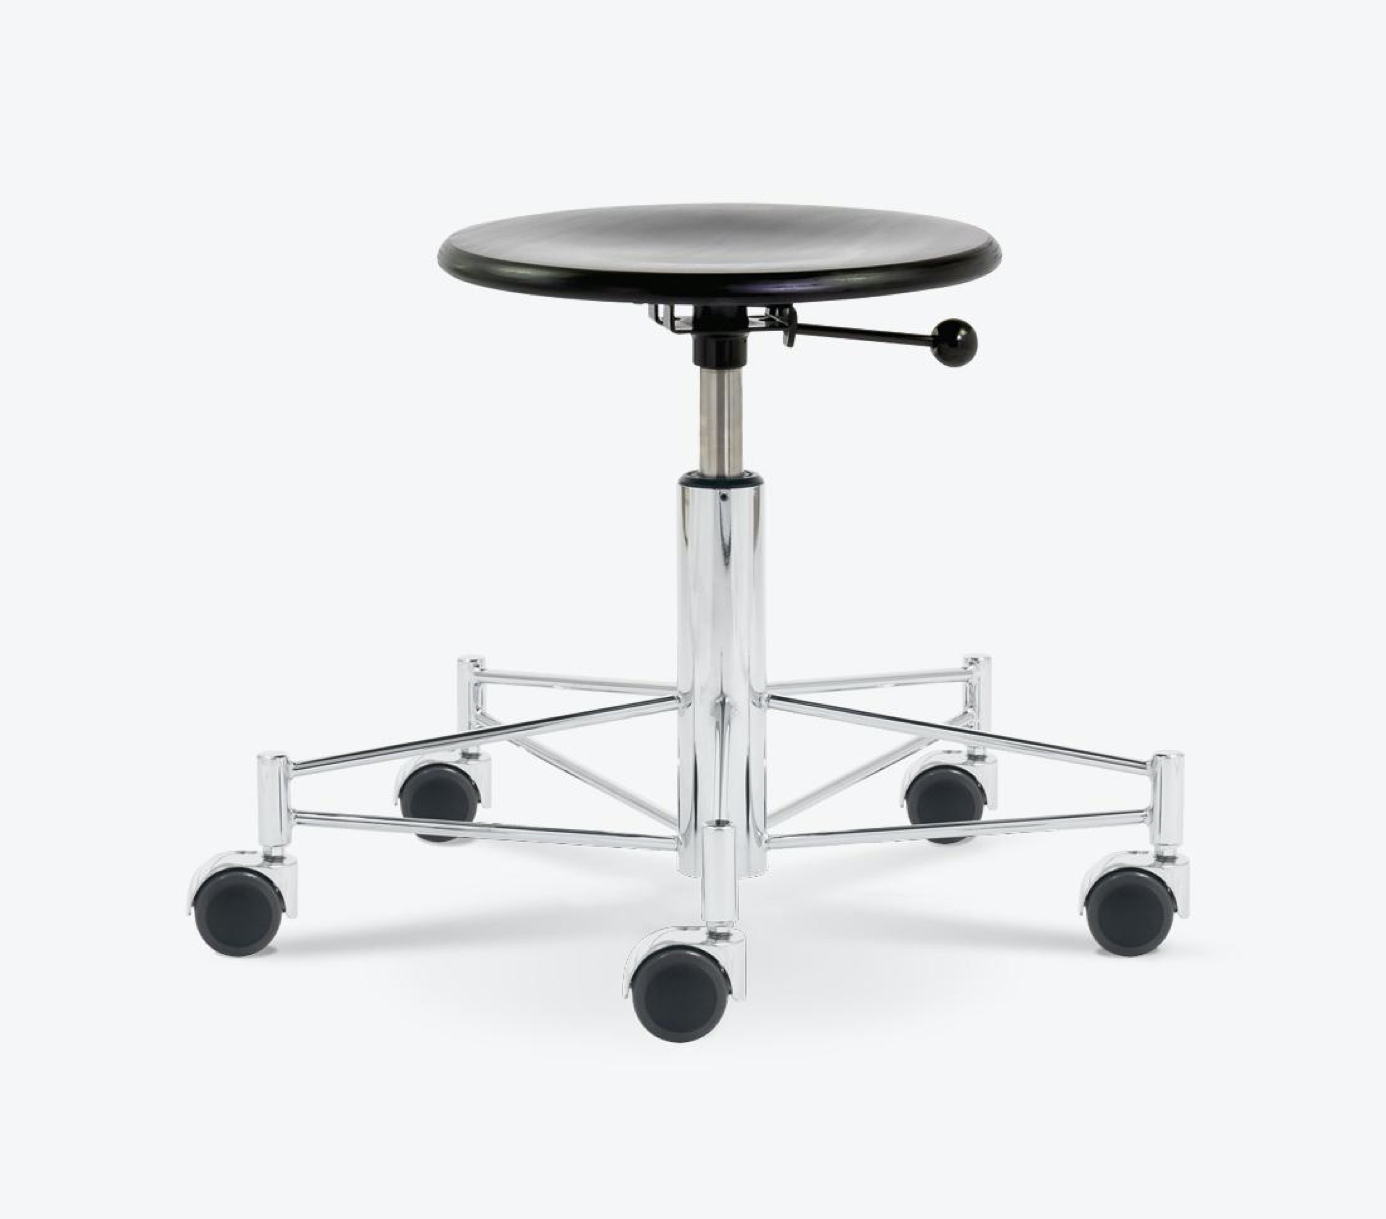 Eiermann Stool SBG 43